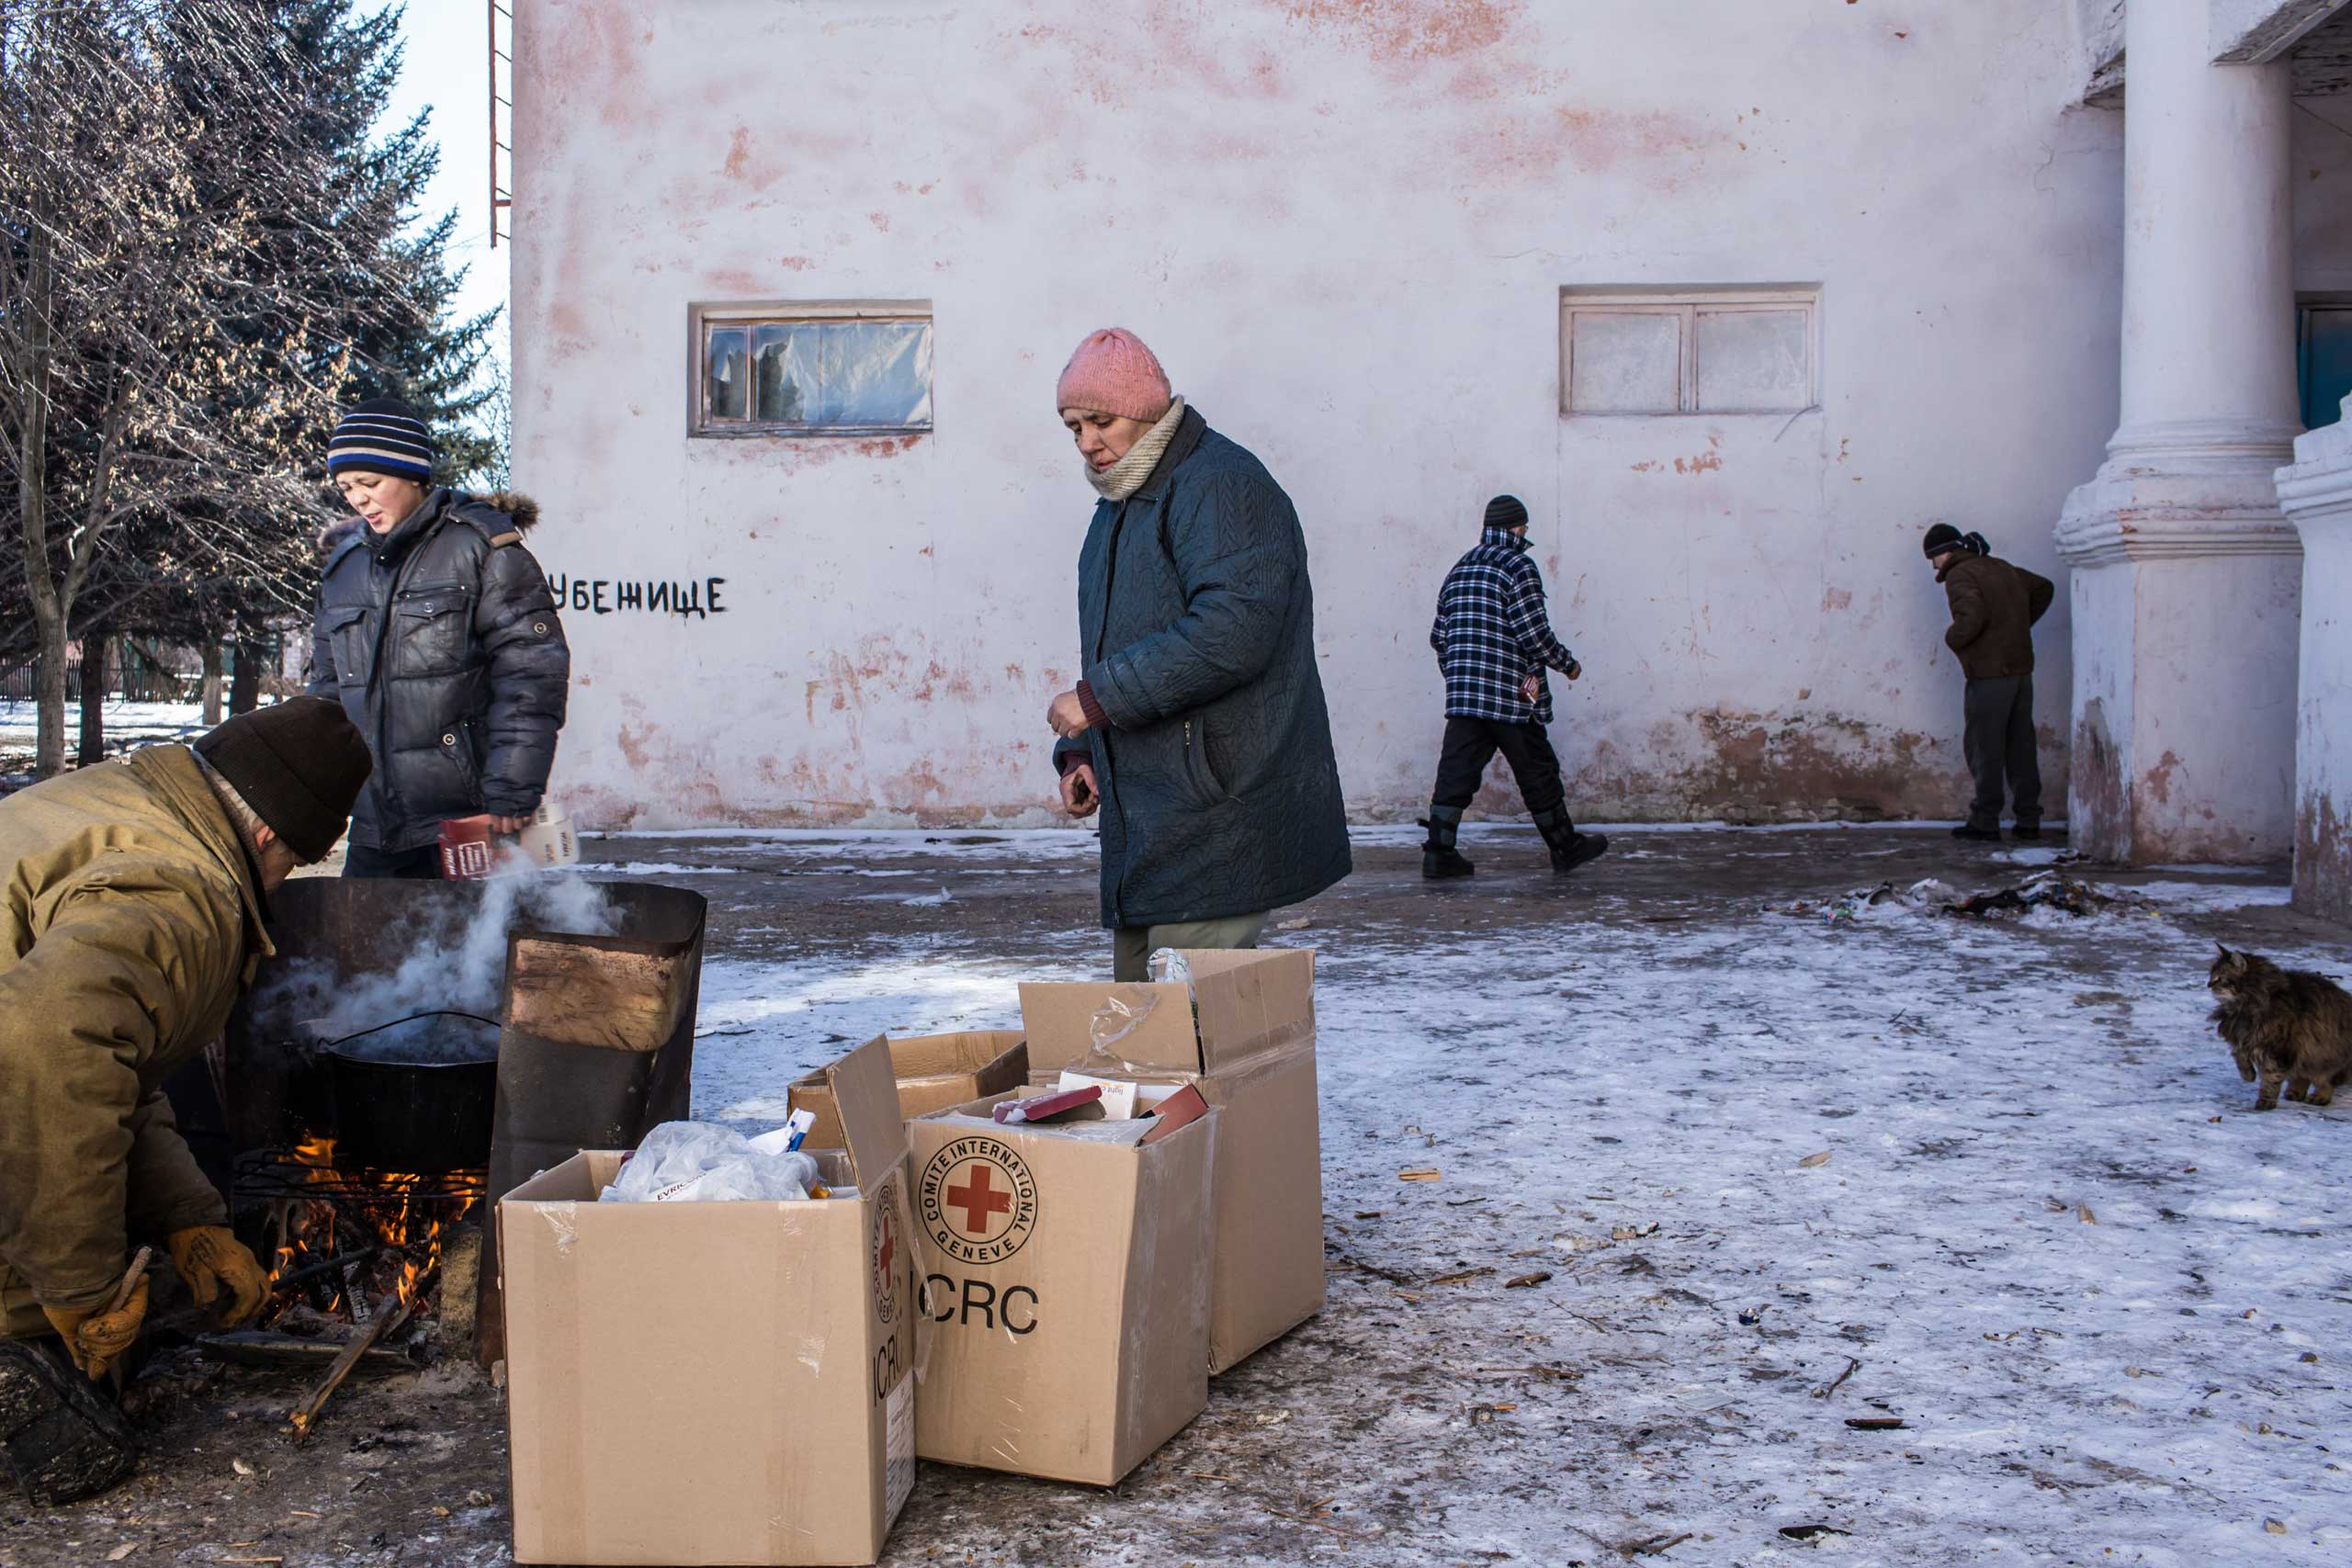 People cook lunch over a fire outside the local House of Culture, which serves as a distribution point for humanitarian aid and provides a bomb shelter, on Feb. 17, 2015 in Mironovka.